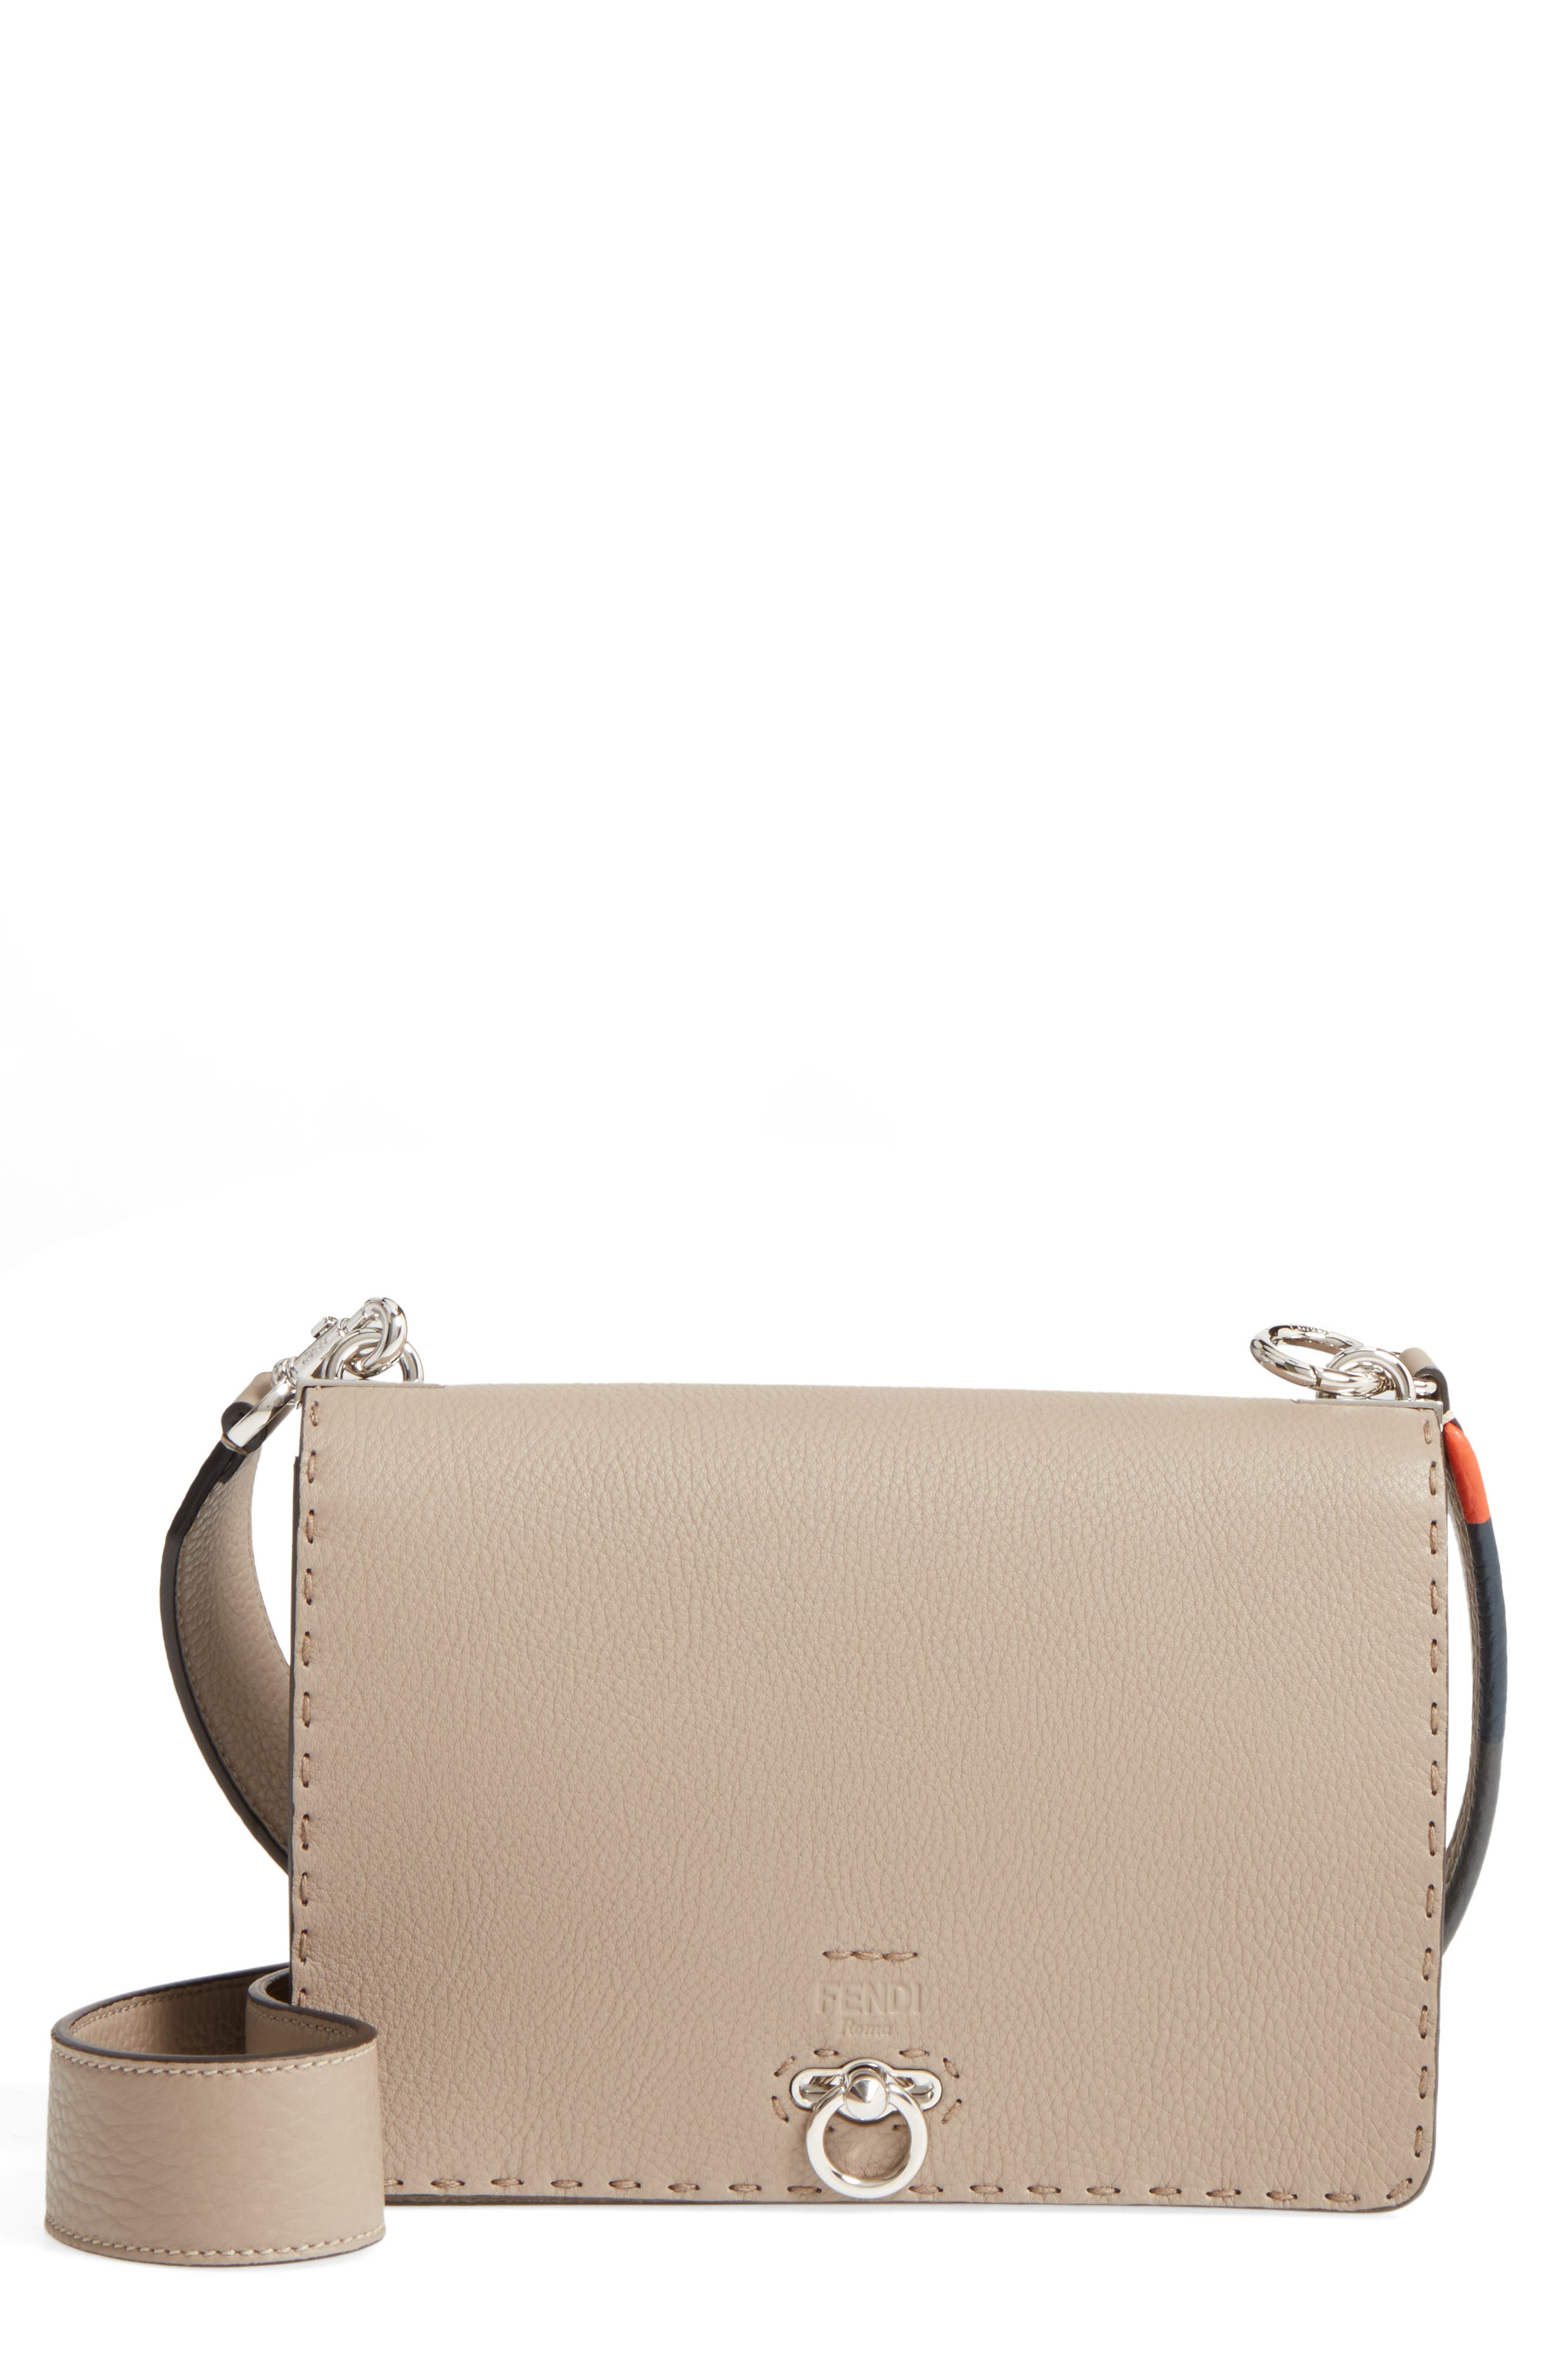 Pebbled Leather Messenger Bag,                         Main,                         color, Beige